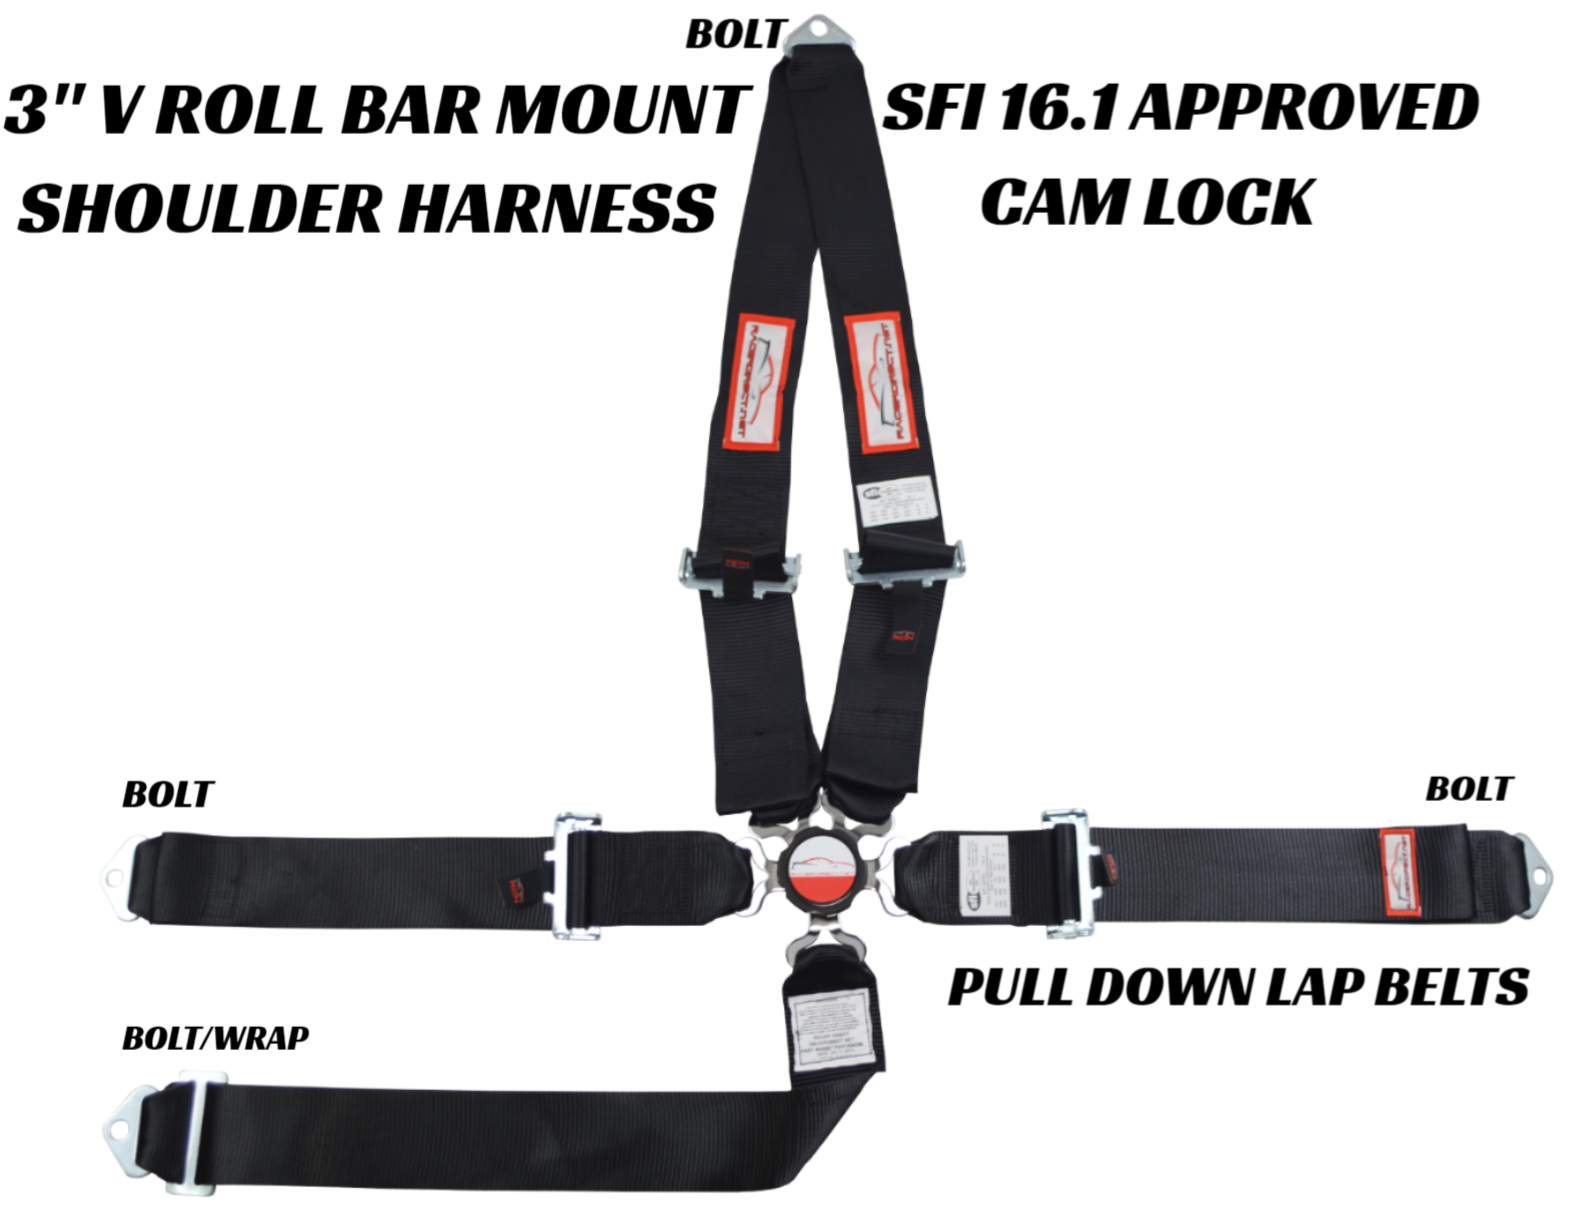 RaceQuip 743003 Pull Down Racing Harness SFI 16.1 Certified Black 6 Point Camloc